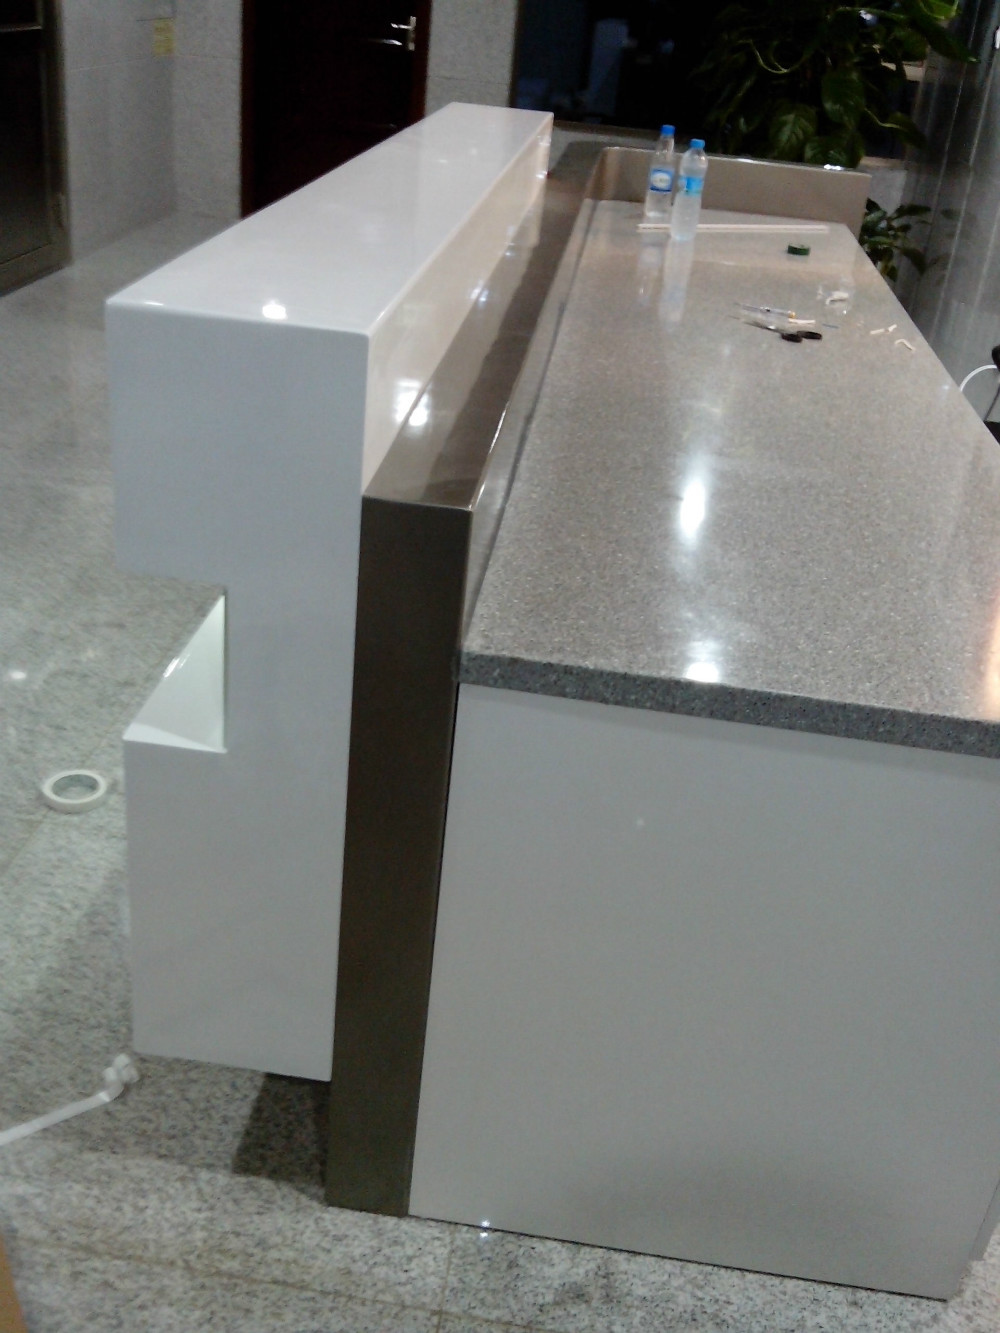 Hotel Curved Marble Reception Desk Counterqt3000 Table Top Is Panel Cabinets Qt3000 Marble Reception Desk Reception Deskcurved Reception Desk Aliexpress